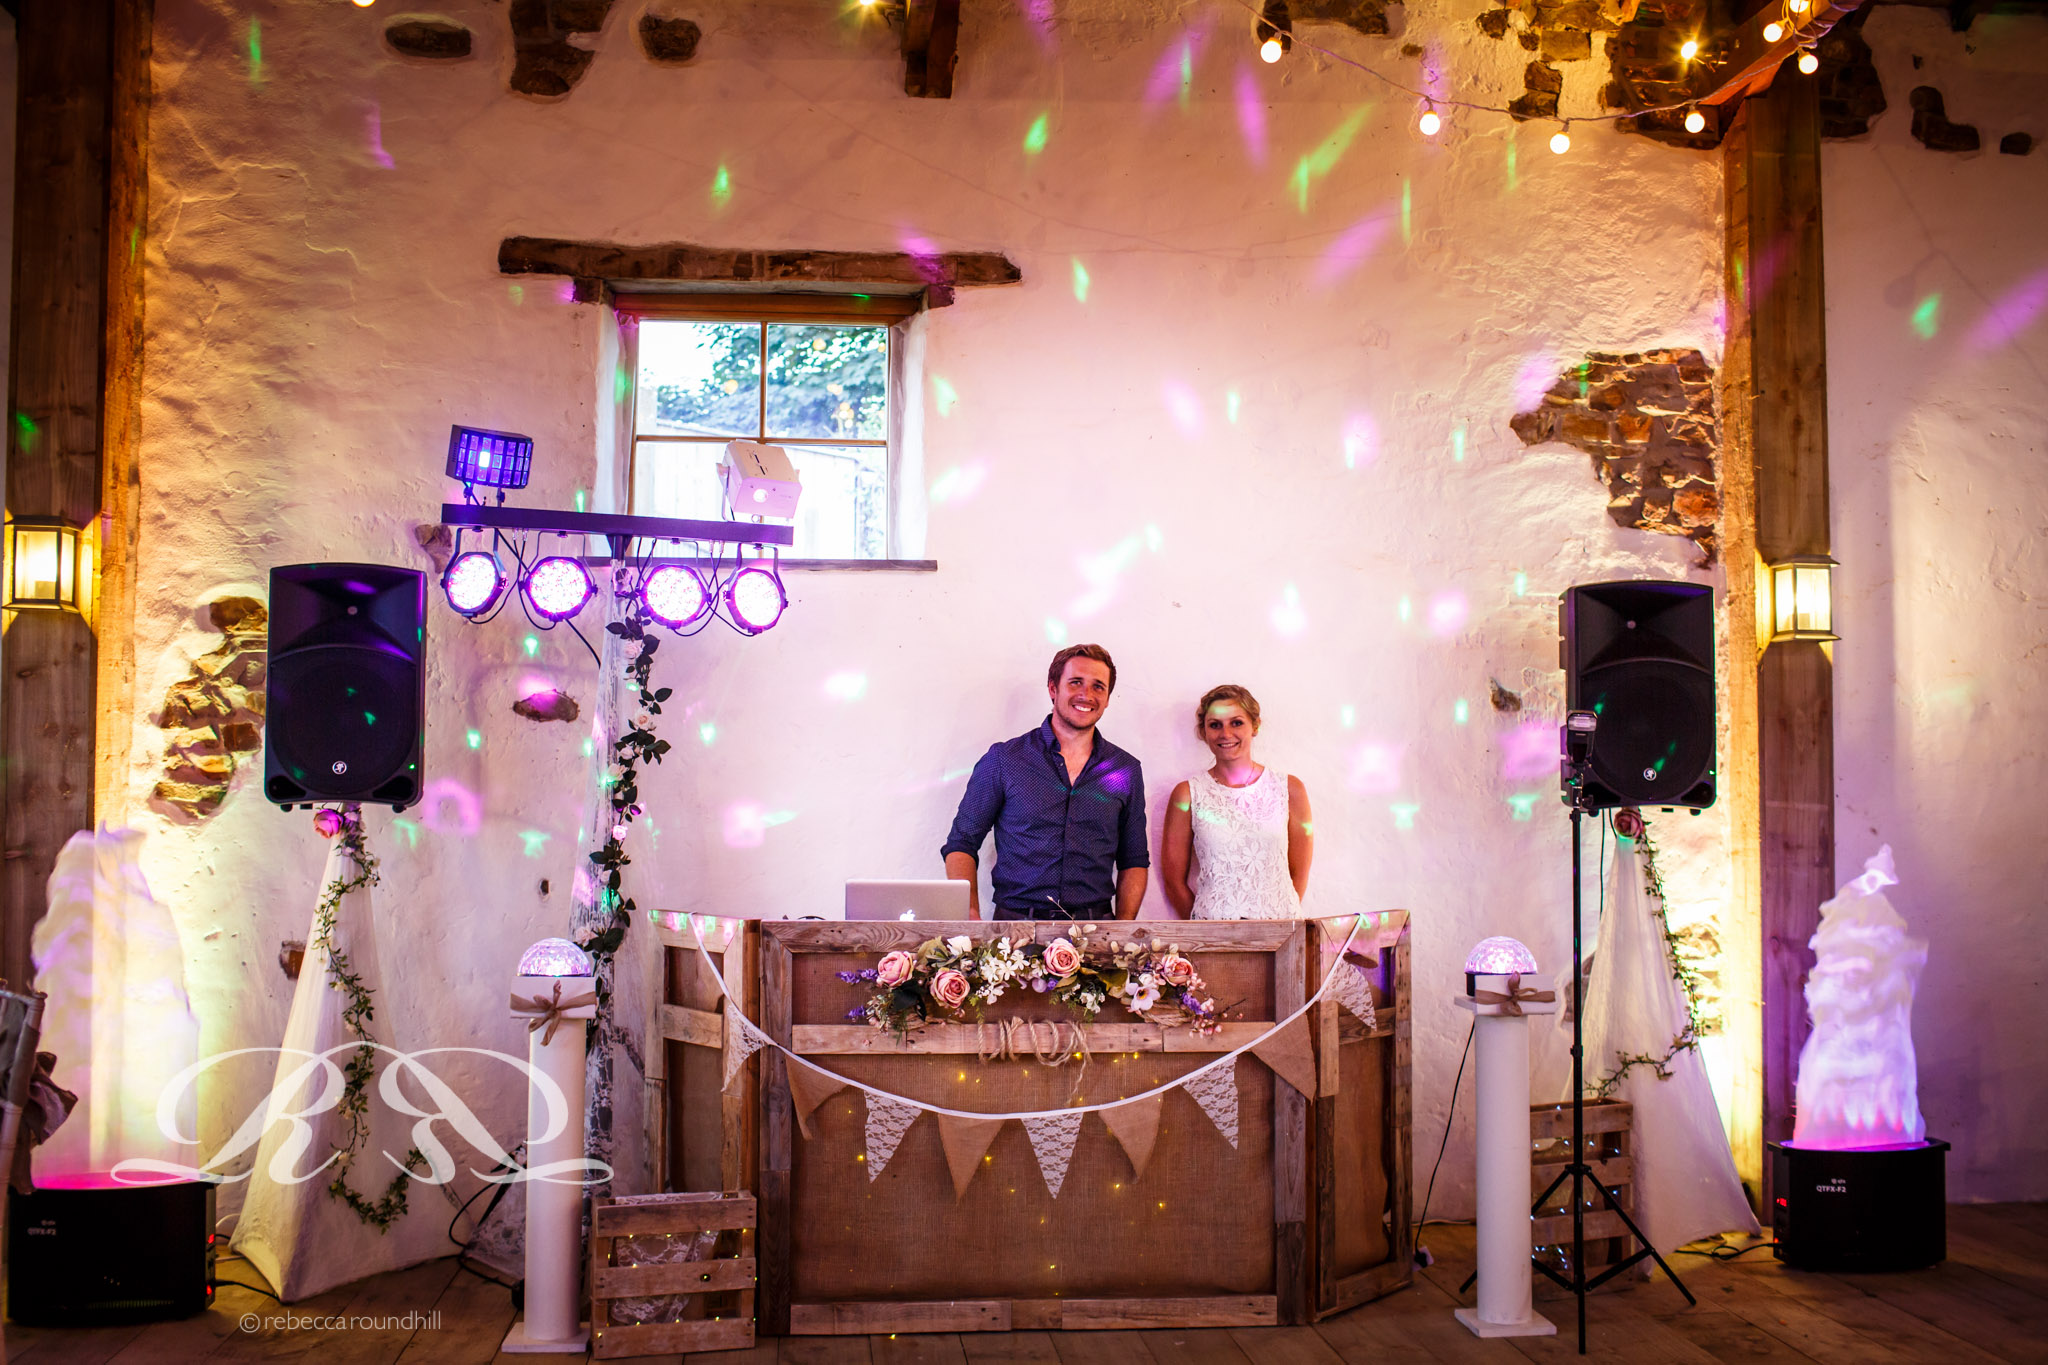 Inspired party wedding dj service dance floorcandy cart inspired party wedding dj service dance floorcandy cart childrens parties junglespirit Image collections